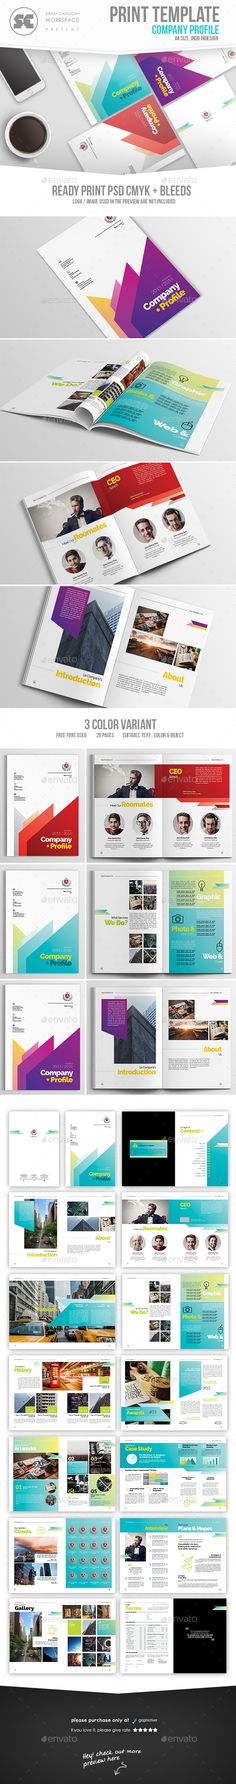 Company Profile Brochure Template InDesign INDD. Download here: https://graphicriver.net/item/company-profile/17276156?ref=ksioks